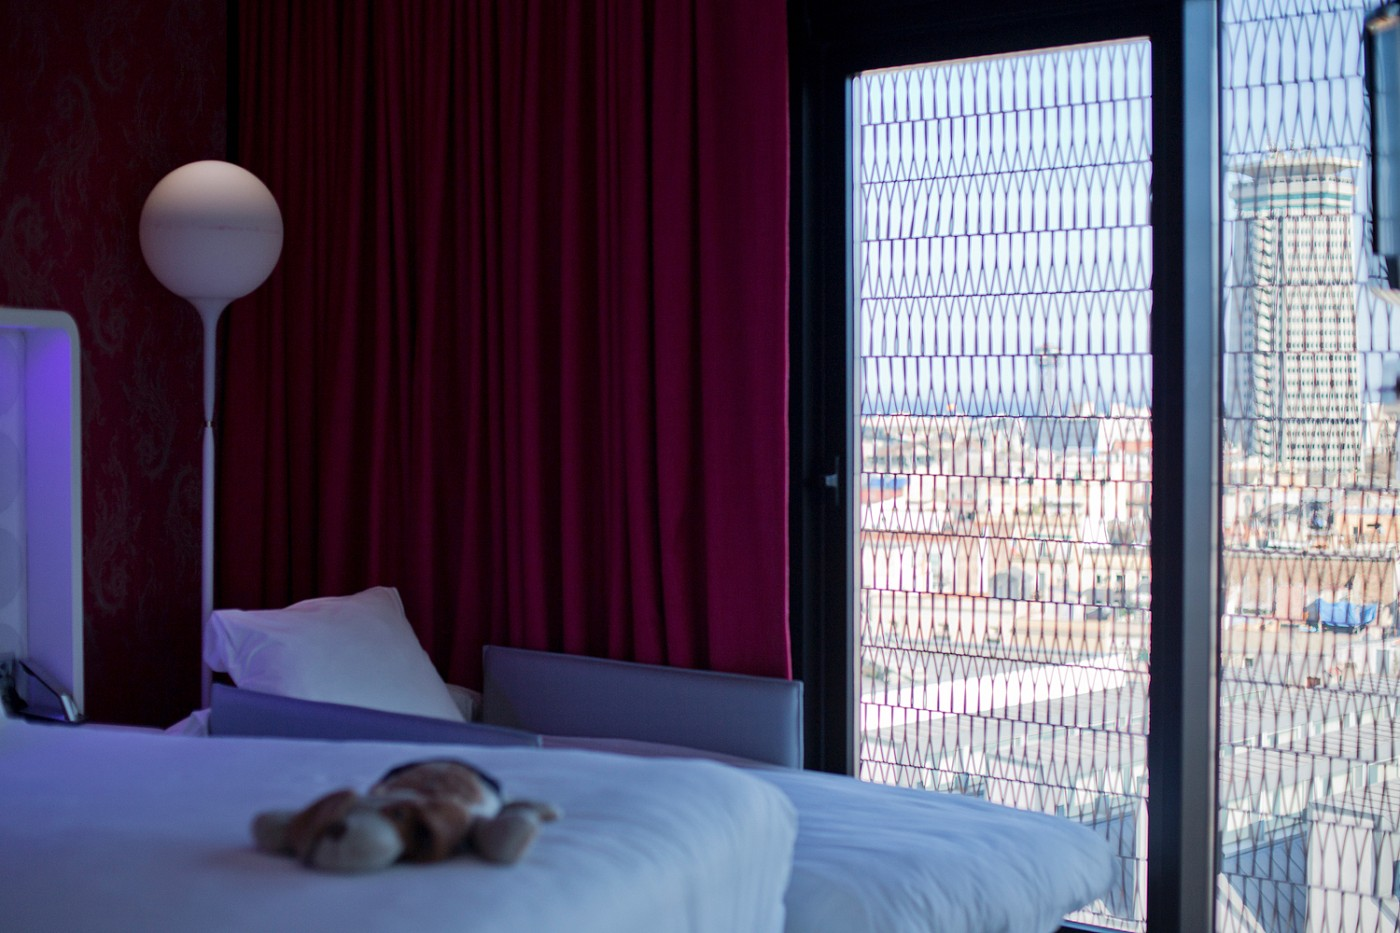 Barcelo Raval Barcelona hotels, where to stay in Barcelona, nice hotel in barcelona rooftop in barcelona